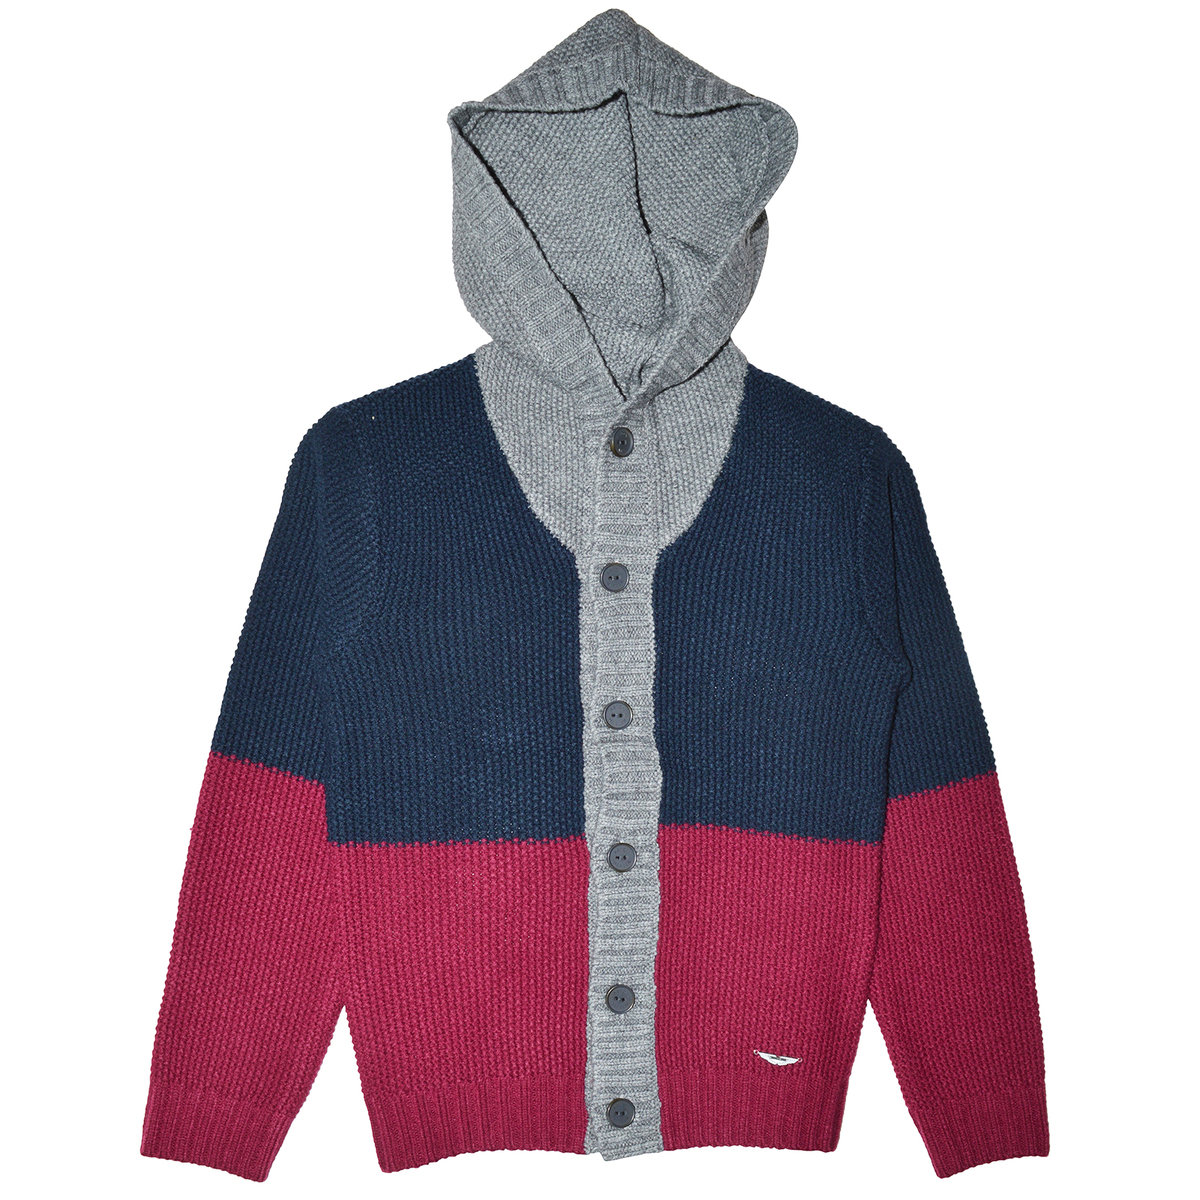 Boys Hooded Cardigan | Aston Martin Cardigans & Sweaters | Angelibebe